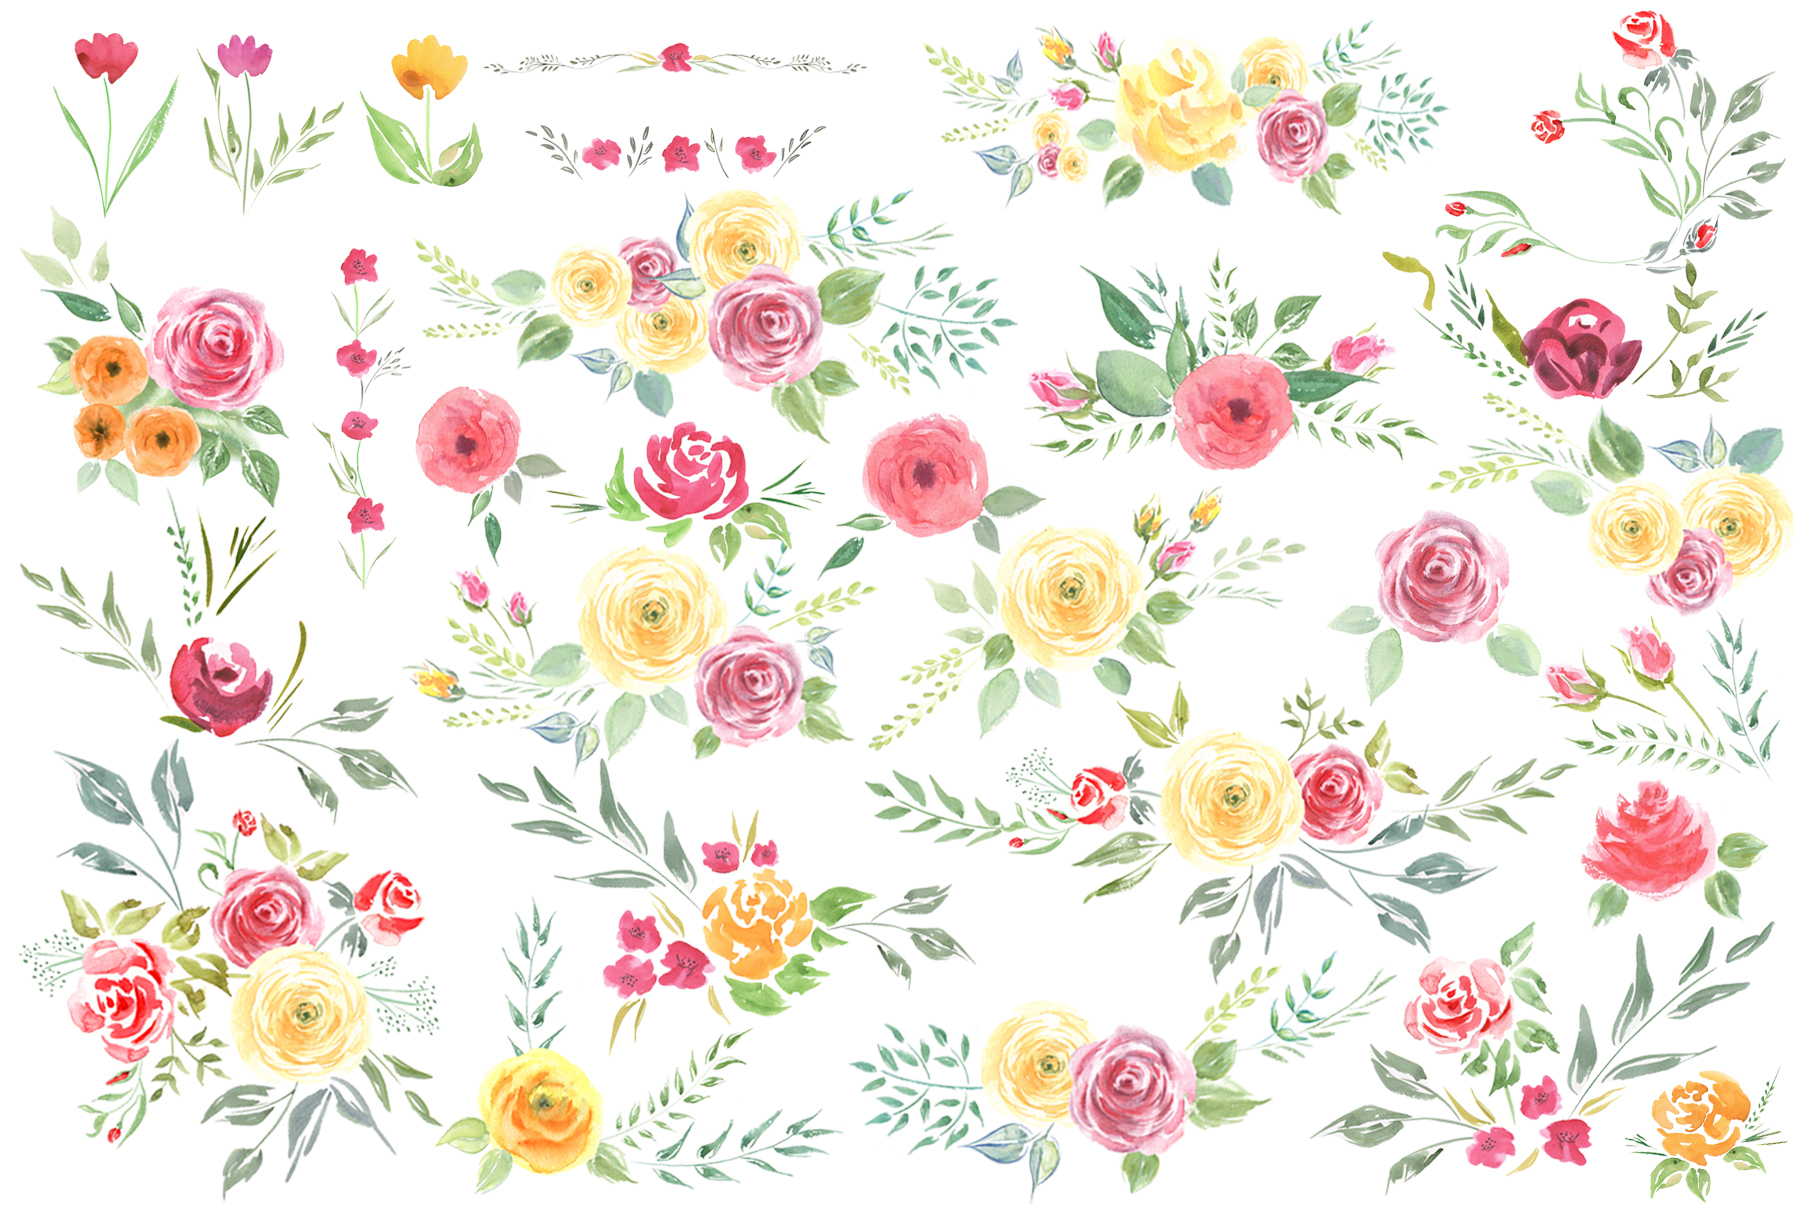 Queen of Flowers watercolor collection example image 15